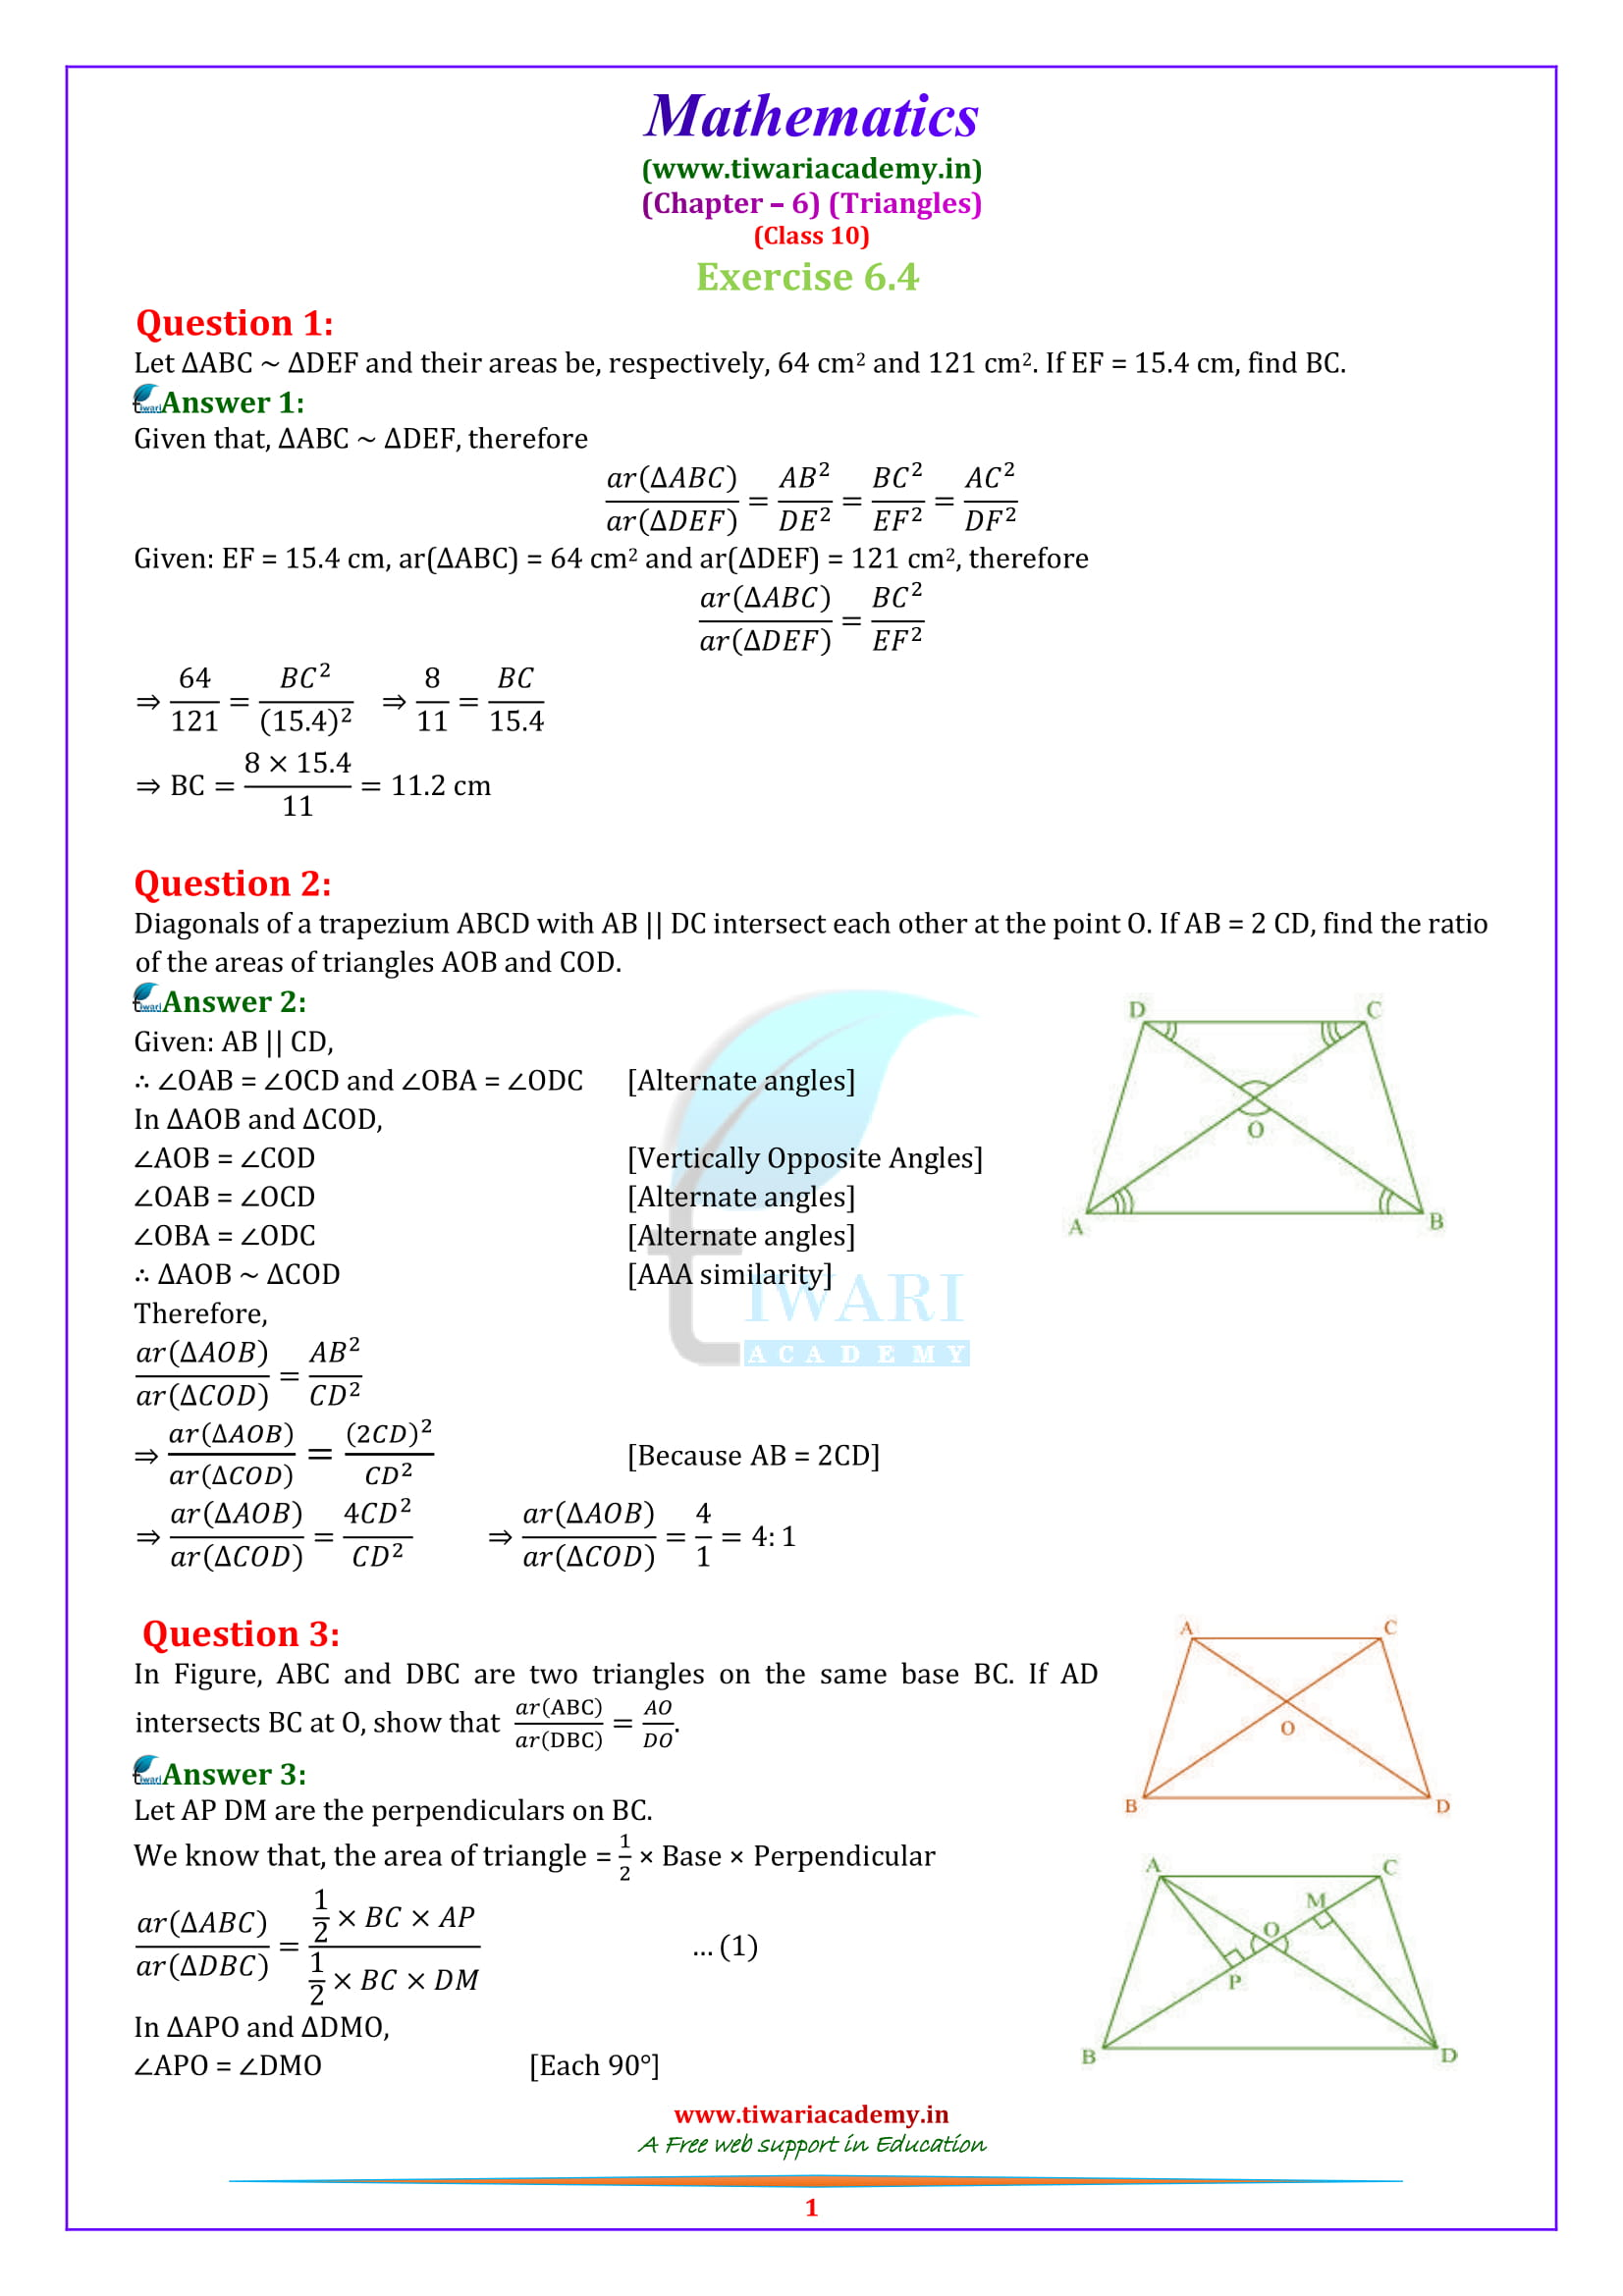 10 Maths Exercise 6.4 solutions in english medium